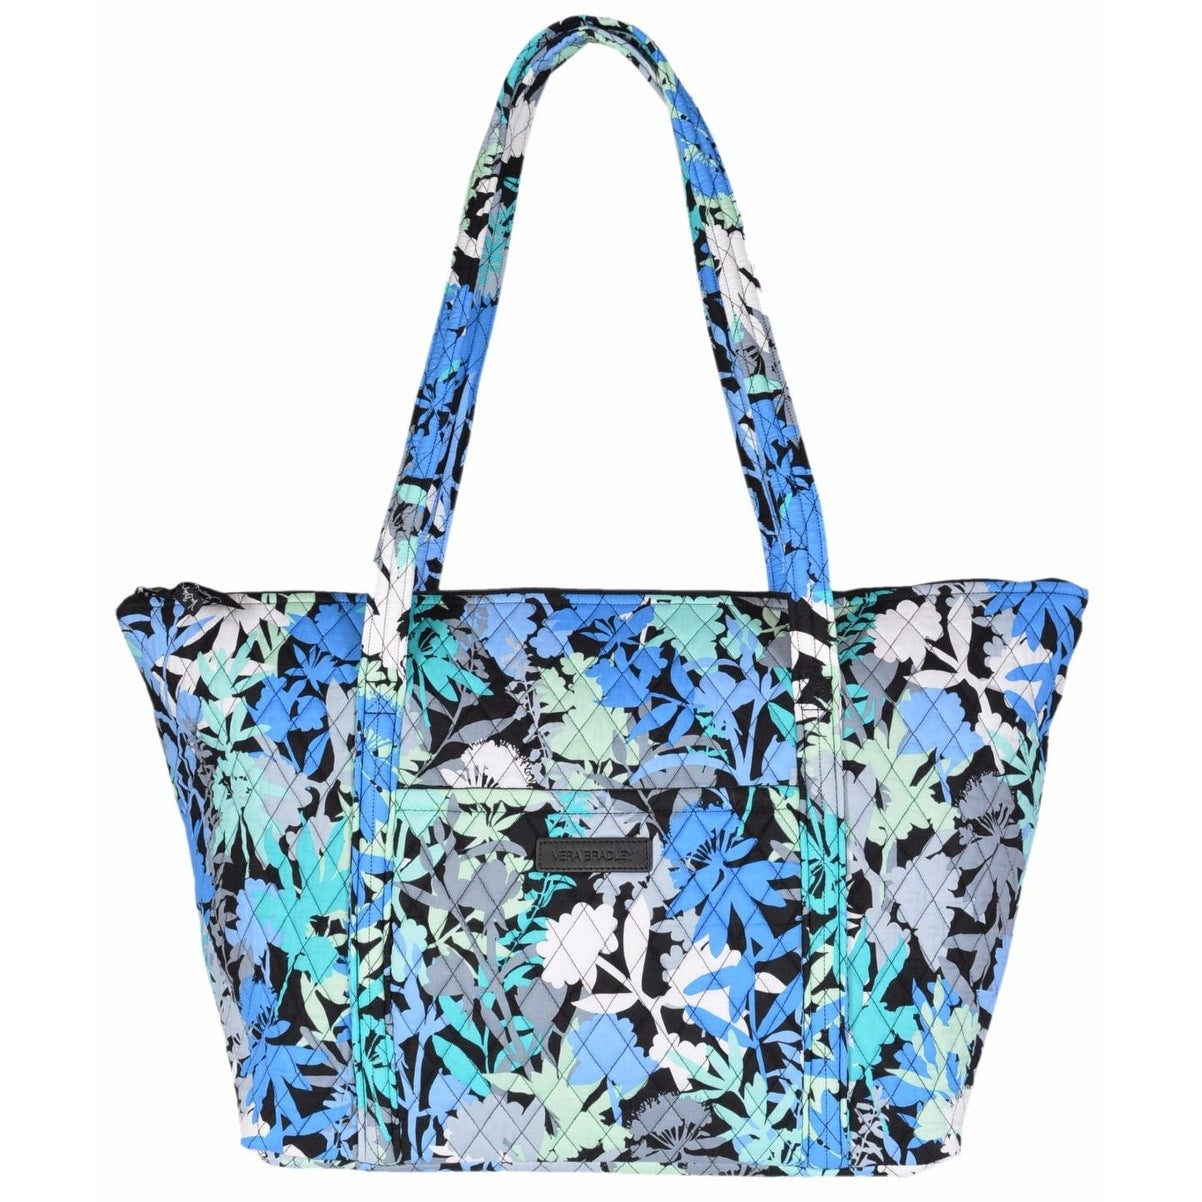 Shop Vera Bradley Camofloral Miller Large Zip Top Travel Tote Bag